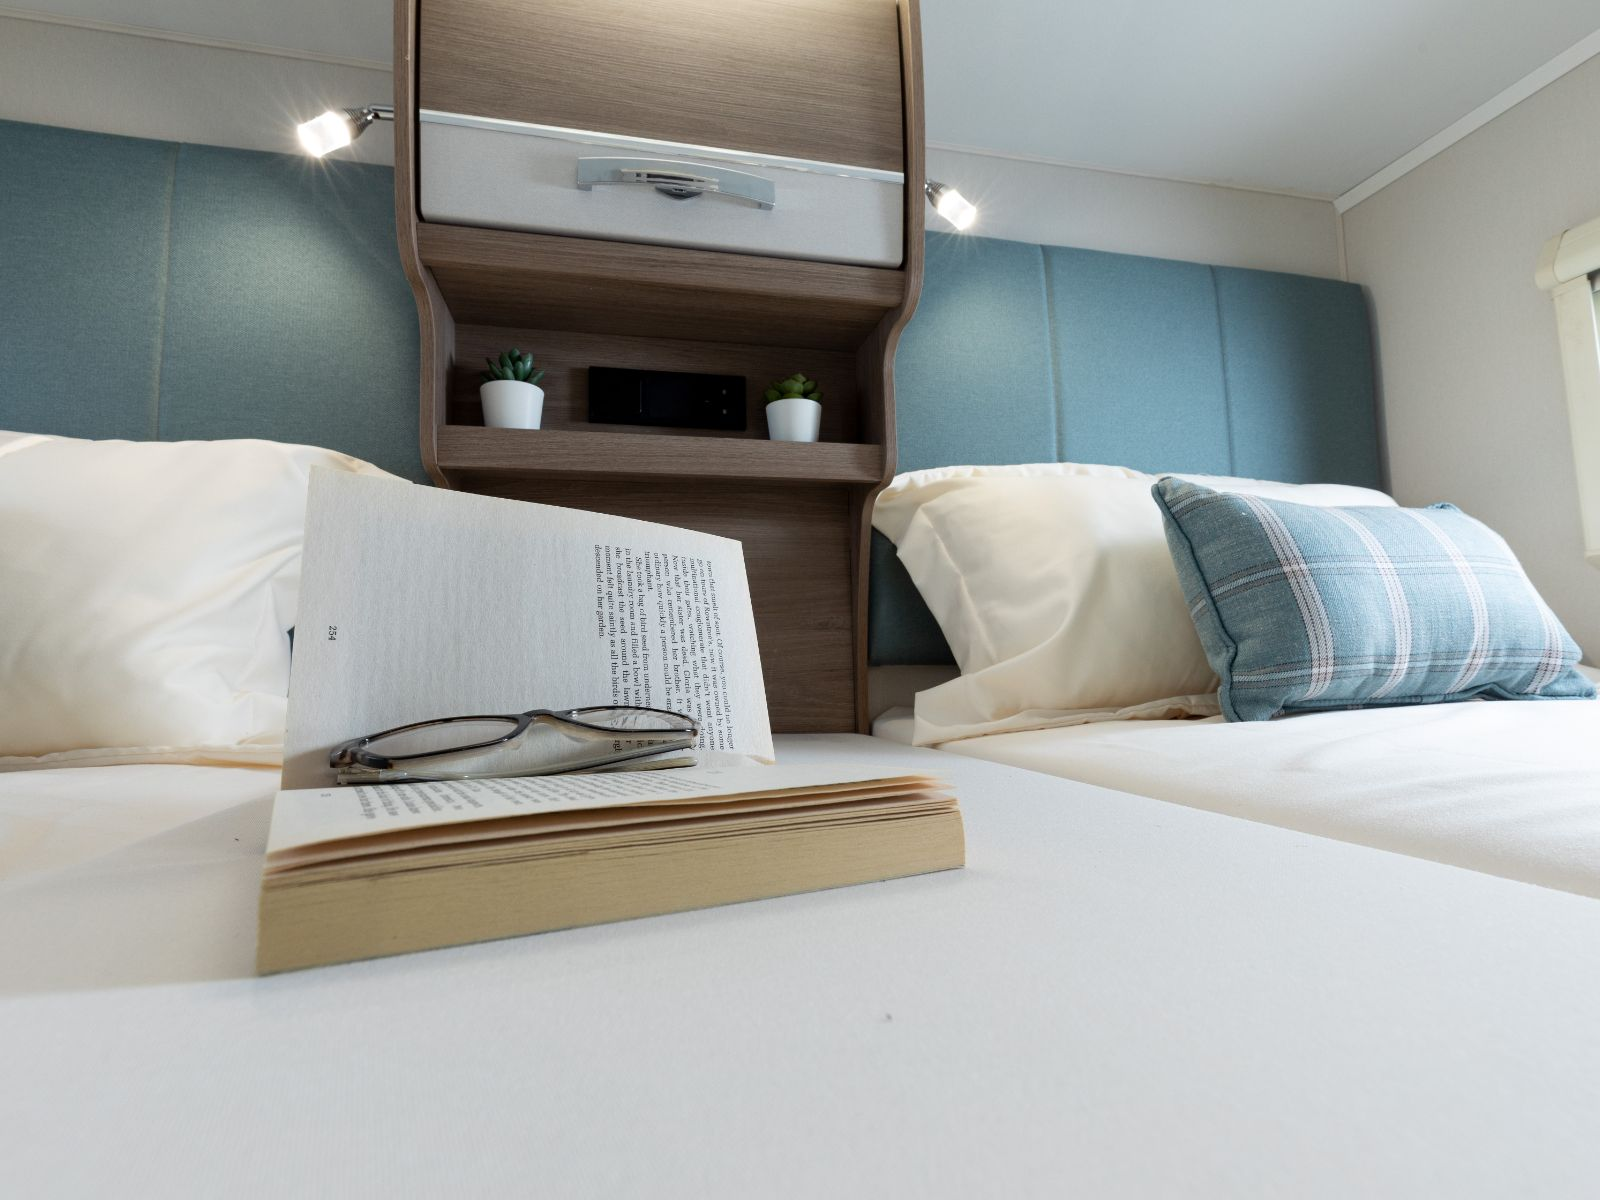 Book and glasses on one of the single beds decorated with pillows'